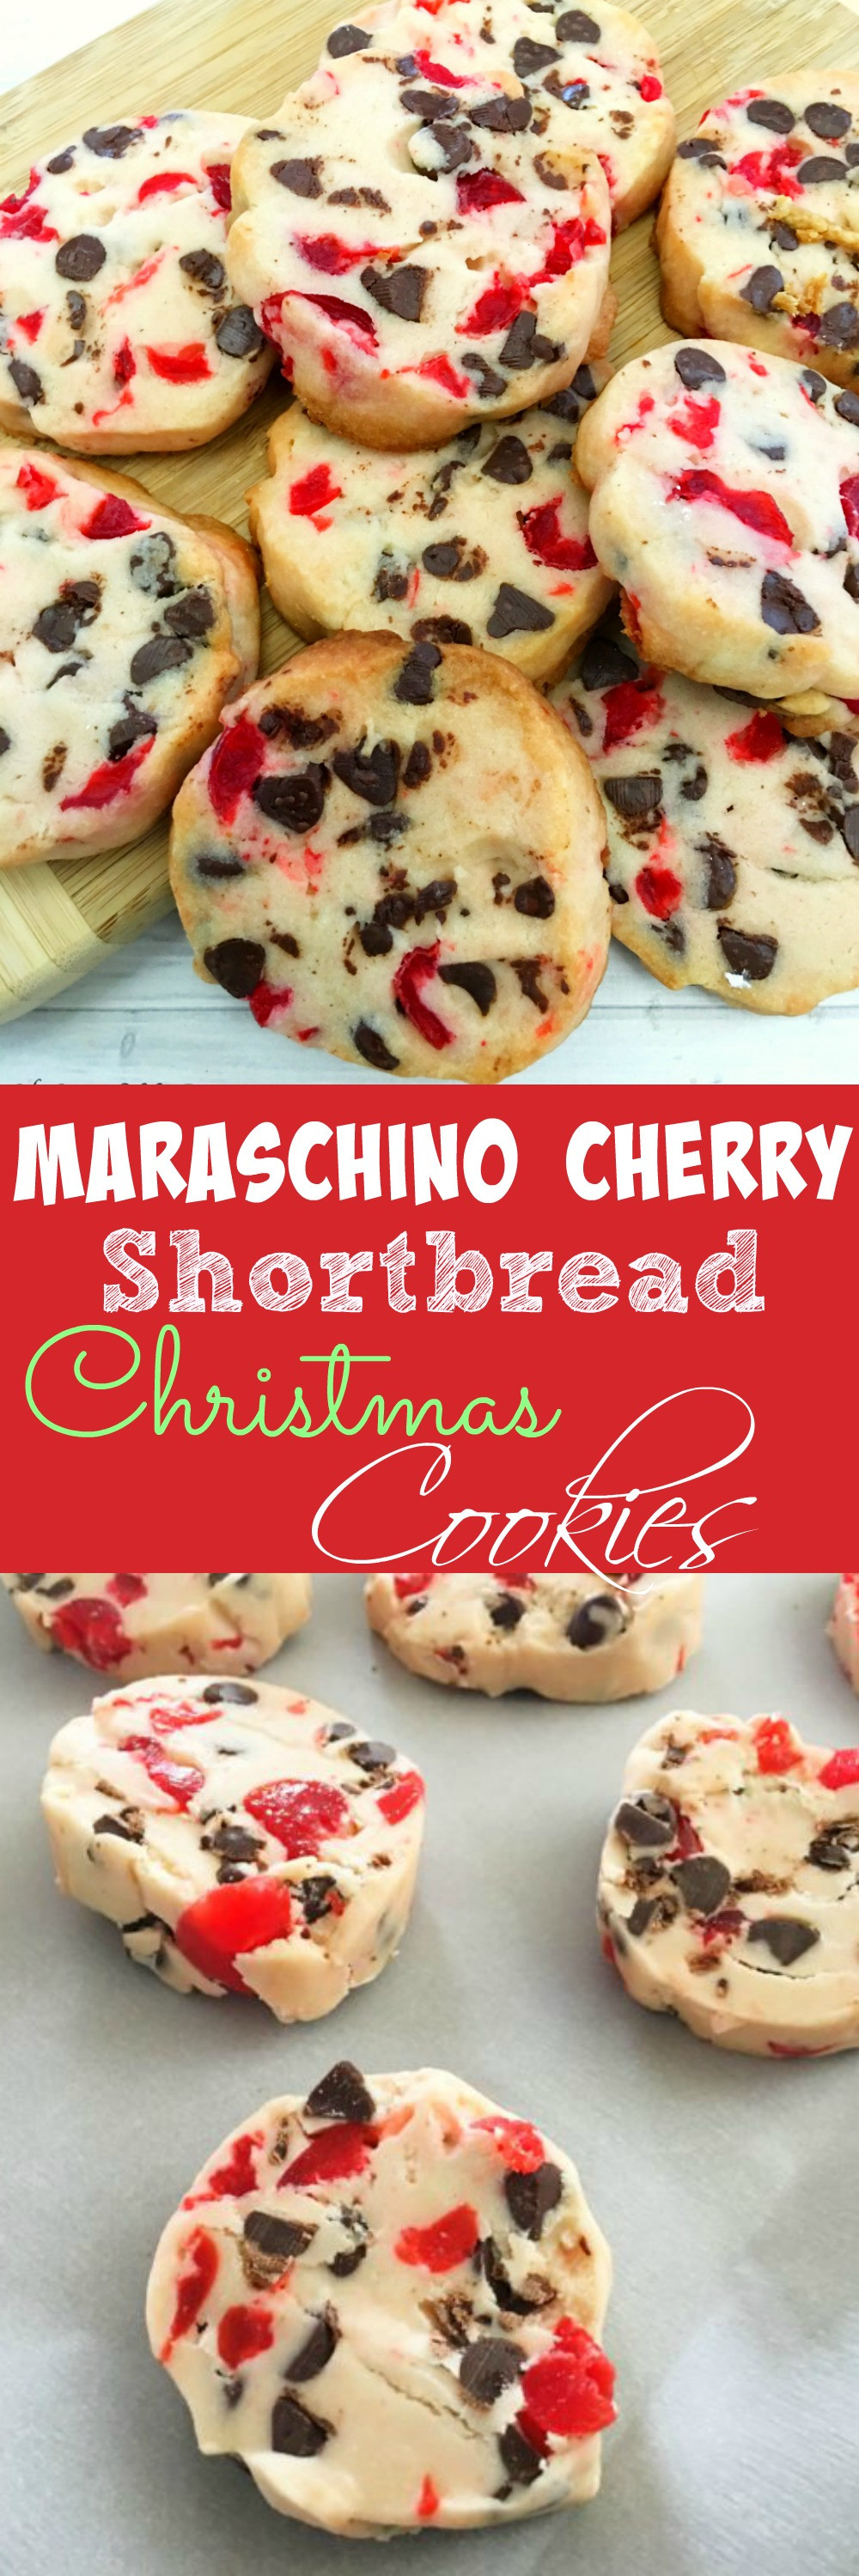 Cherry Christmas Cookies  Maraschino Cherry Shortbread Christmas Cookies